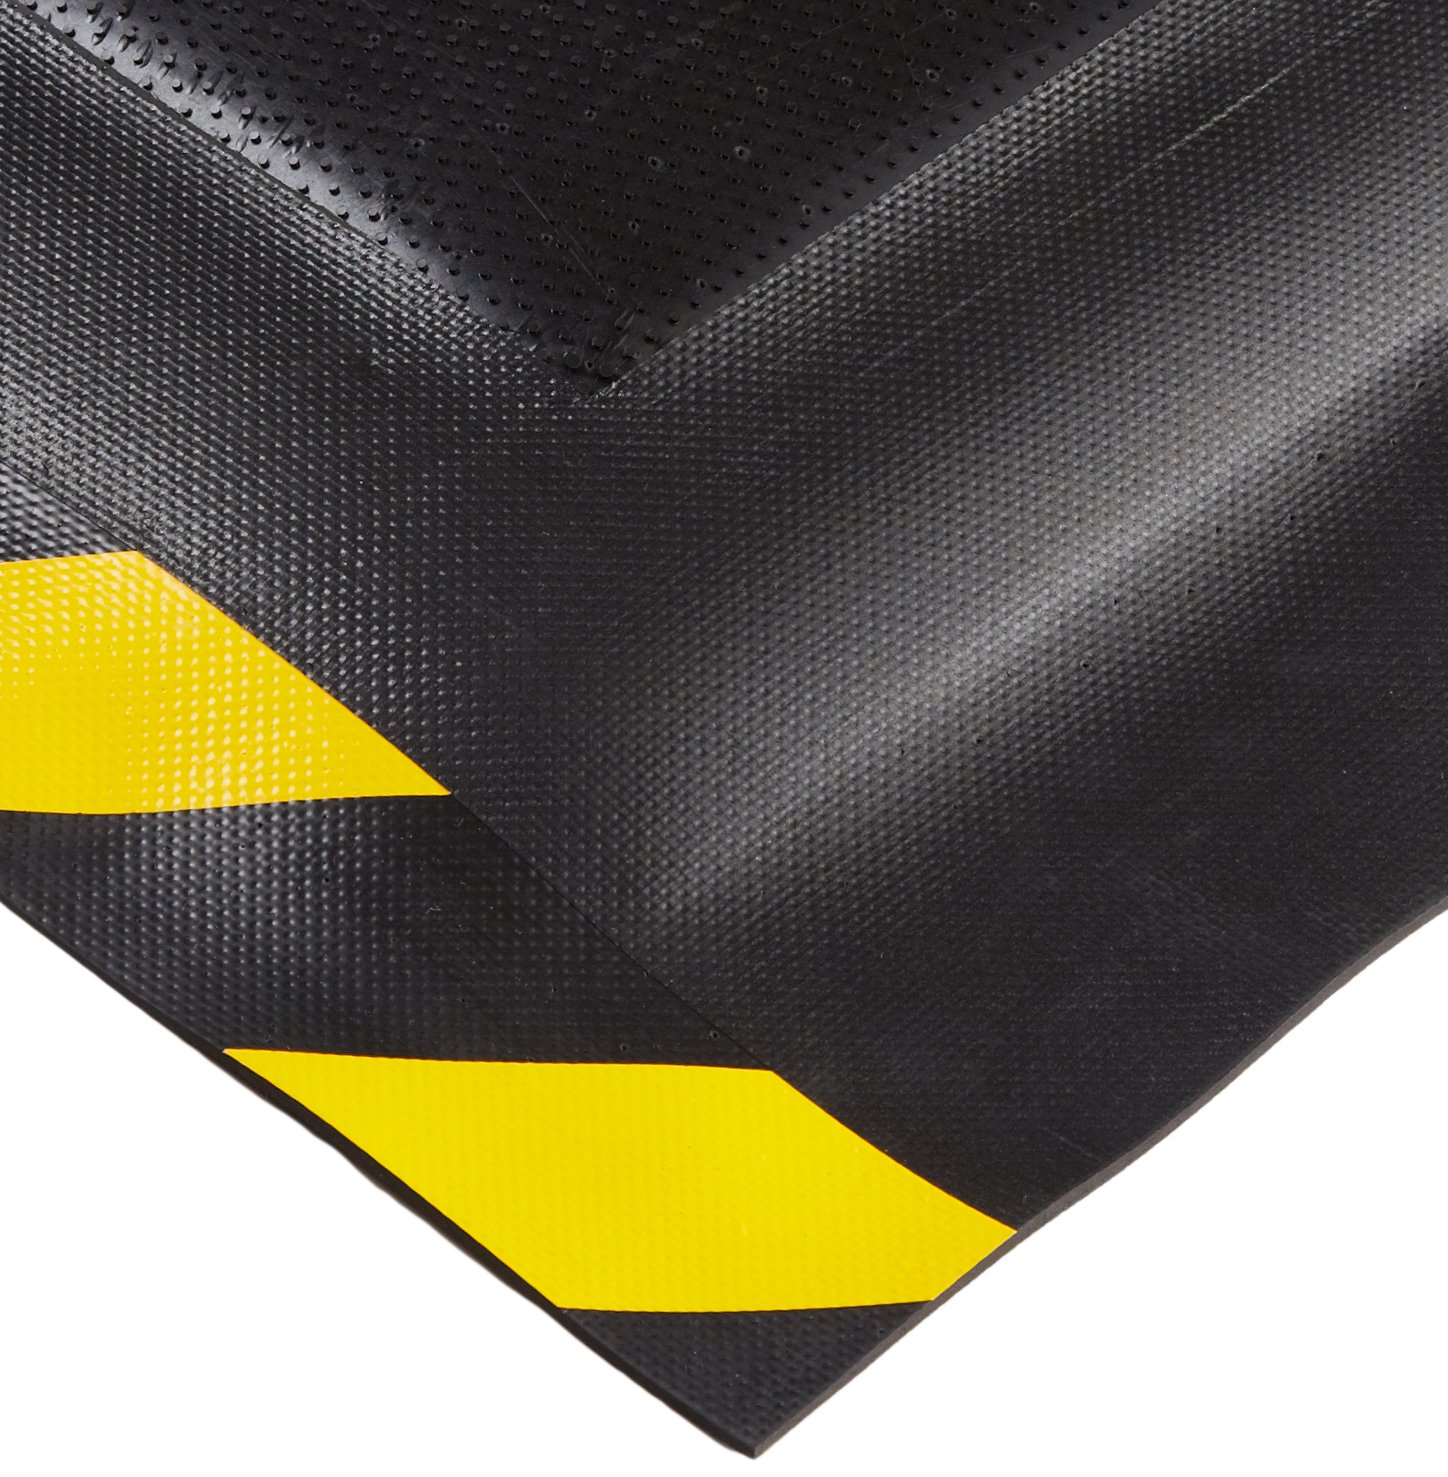 Andersen 510 Nitrile Rubber HogHeaven Spill Control Mat with Yellow Striped Border, 5' Length x 3' Width x 7/8 Thick, For Indoor/Outdoor by Andersen B008BWQRNS